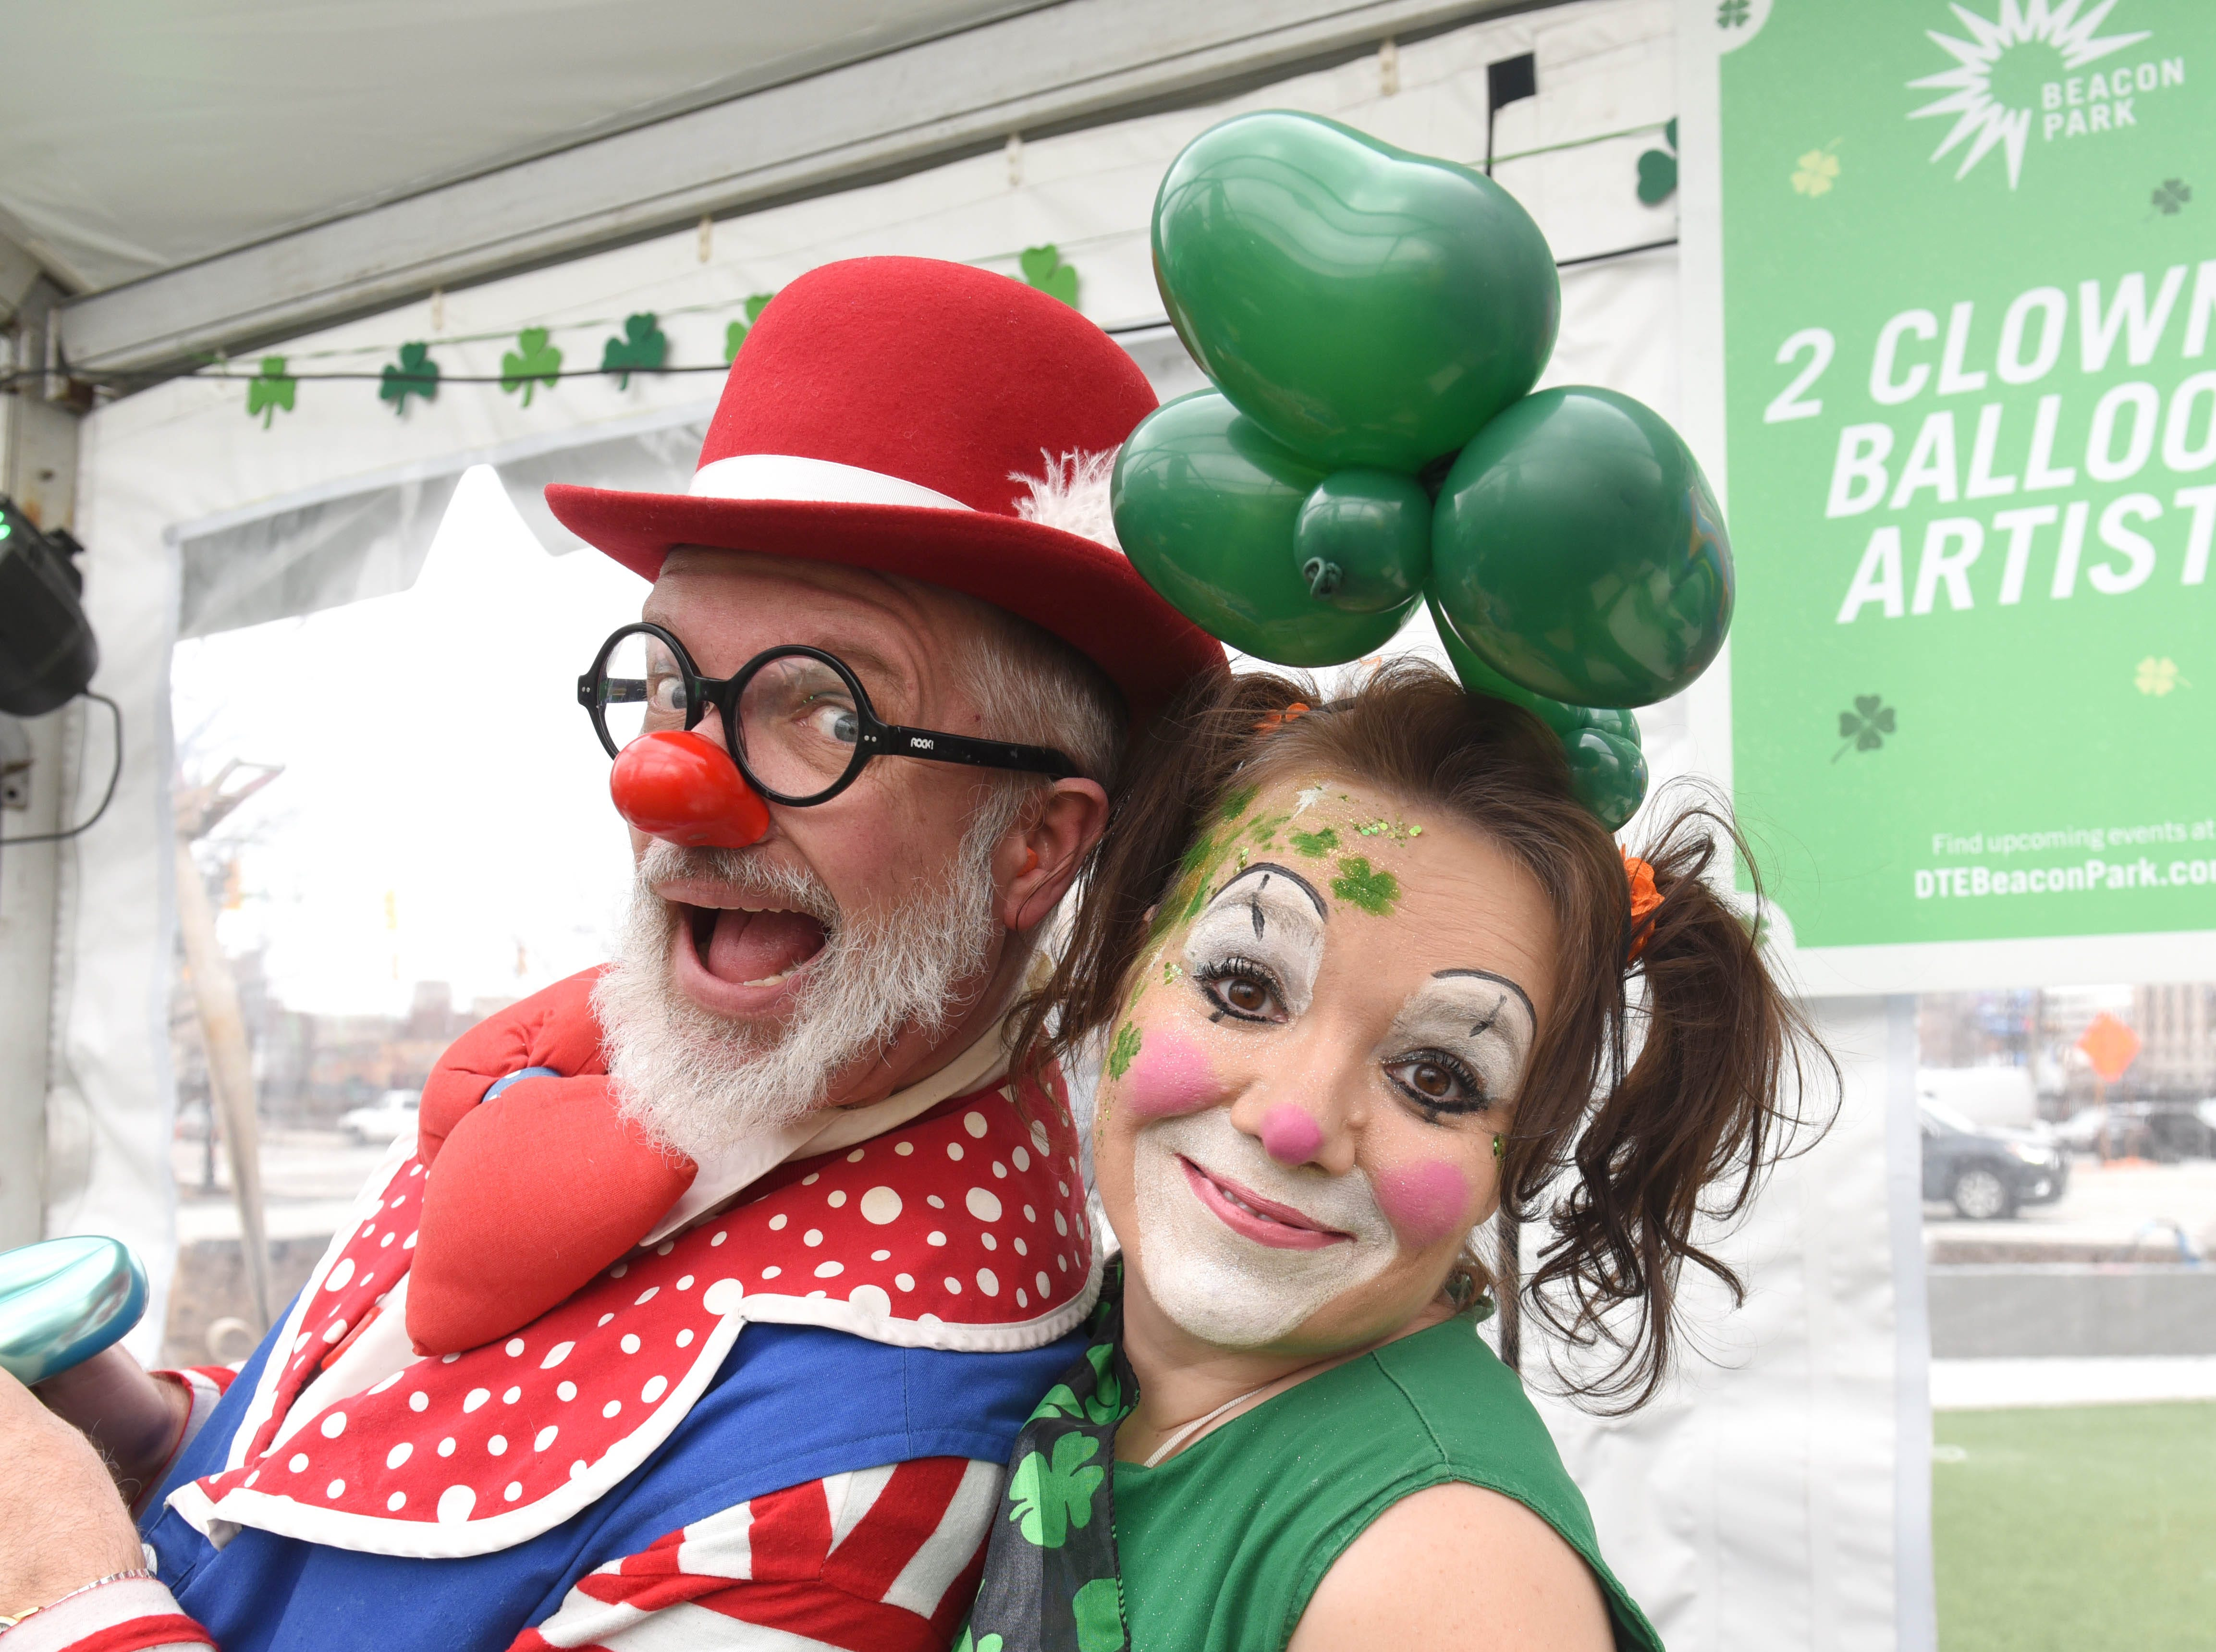 Dan Priest and his wife, Janice Priest, of 2Clowns.com, enjoy making balloon animals during the St. Patrick's Day Party at Beacon Park under a giant heated tent on Saturday, March 16, 2019.